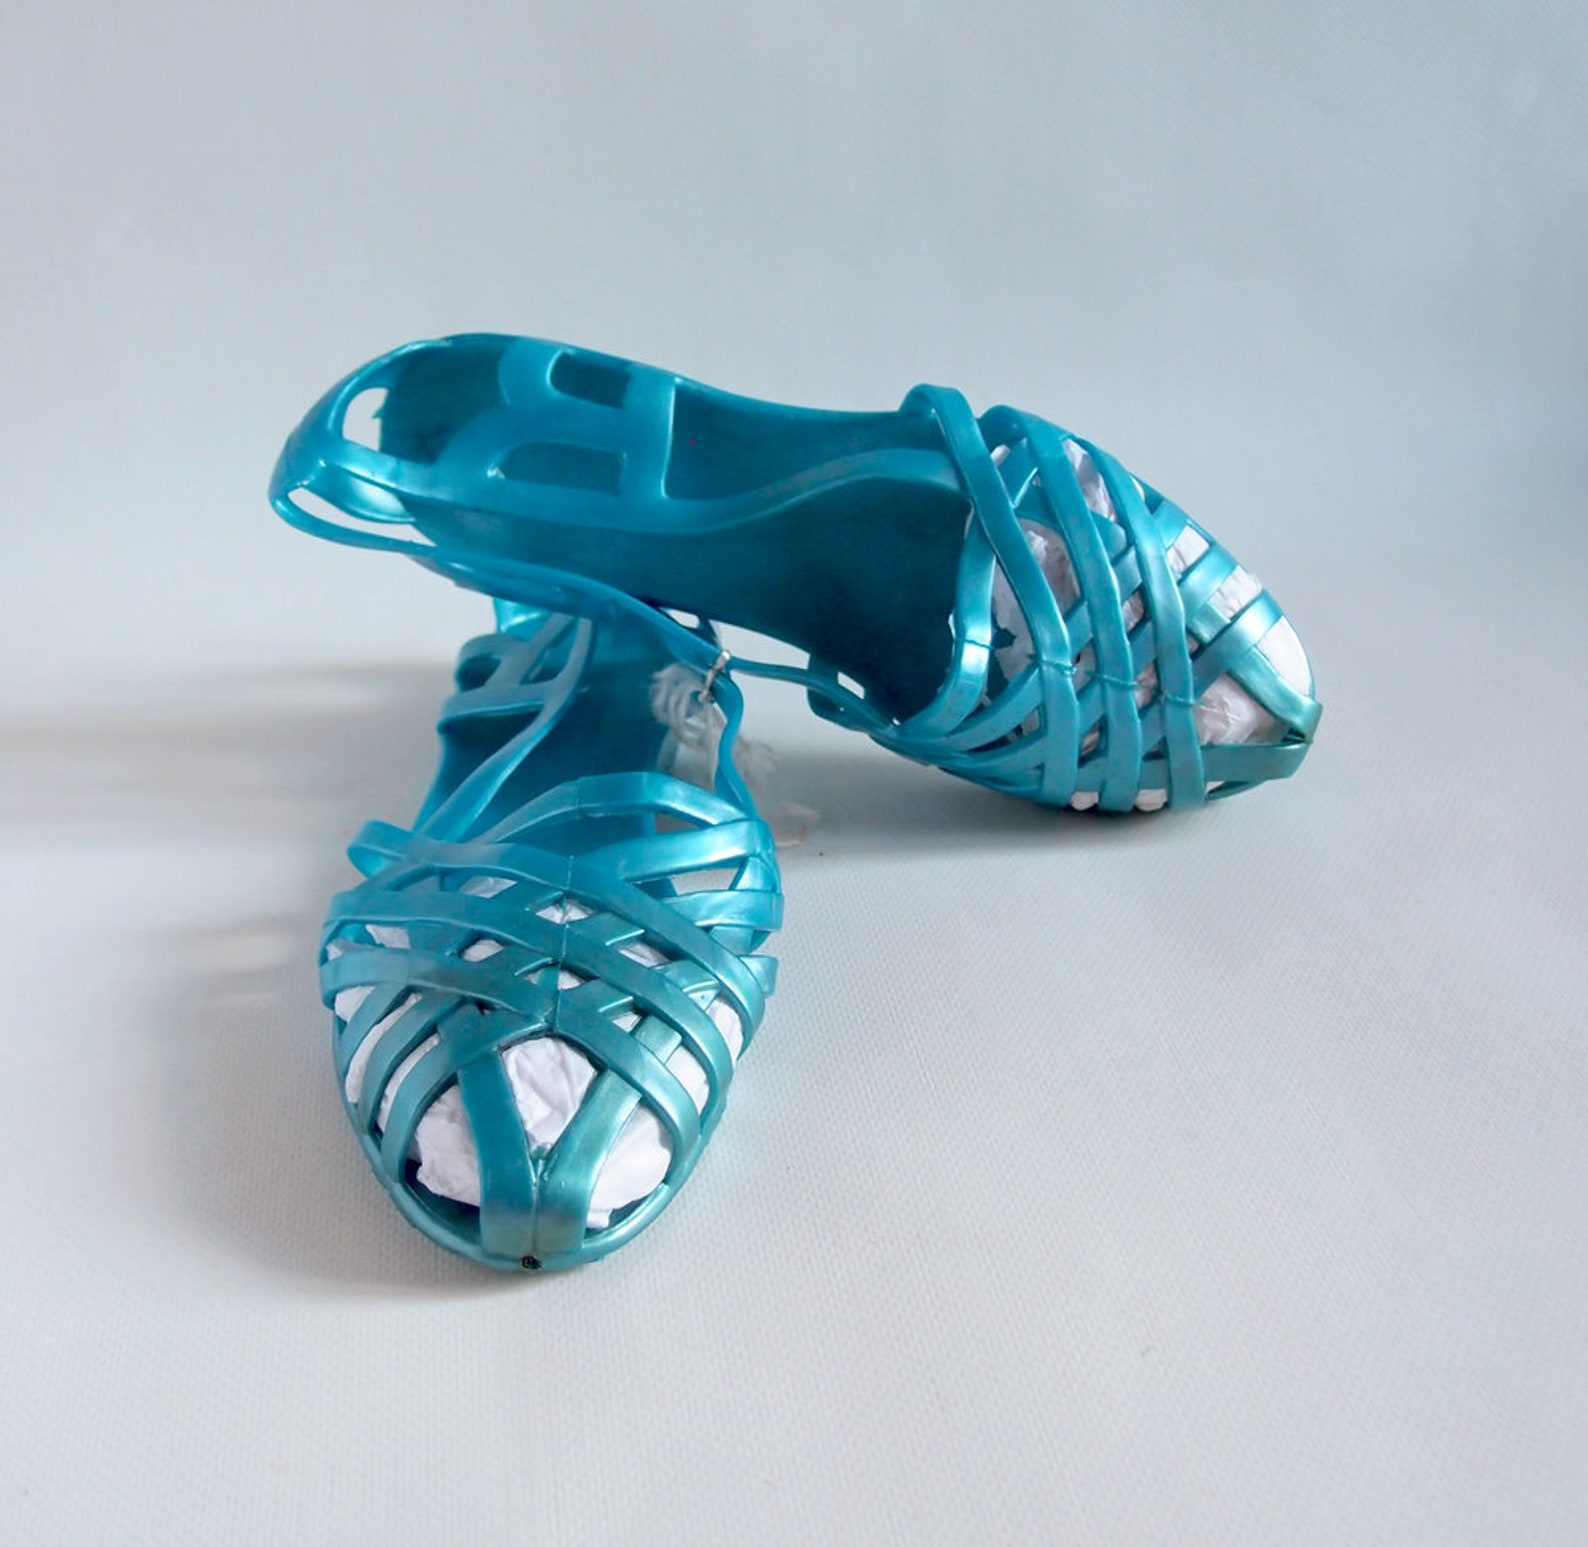 sky blue jelly ballets swimming pool shoes vintage girl's rubber flats blue jelly sandals summer shoes ussr 90s vintage ball